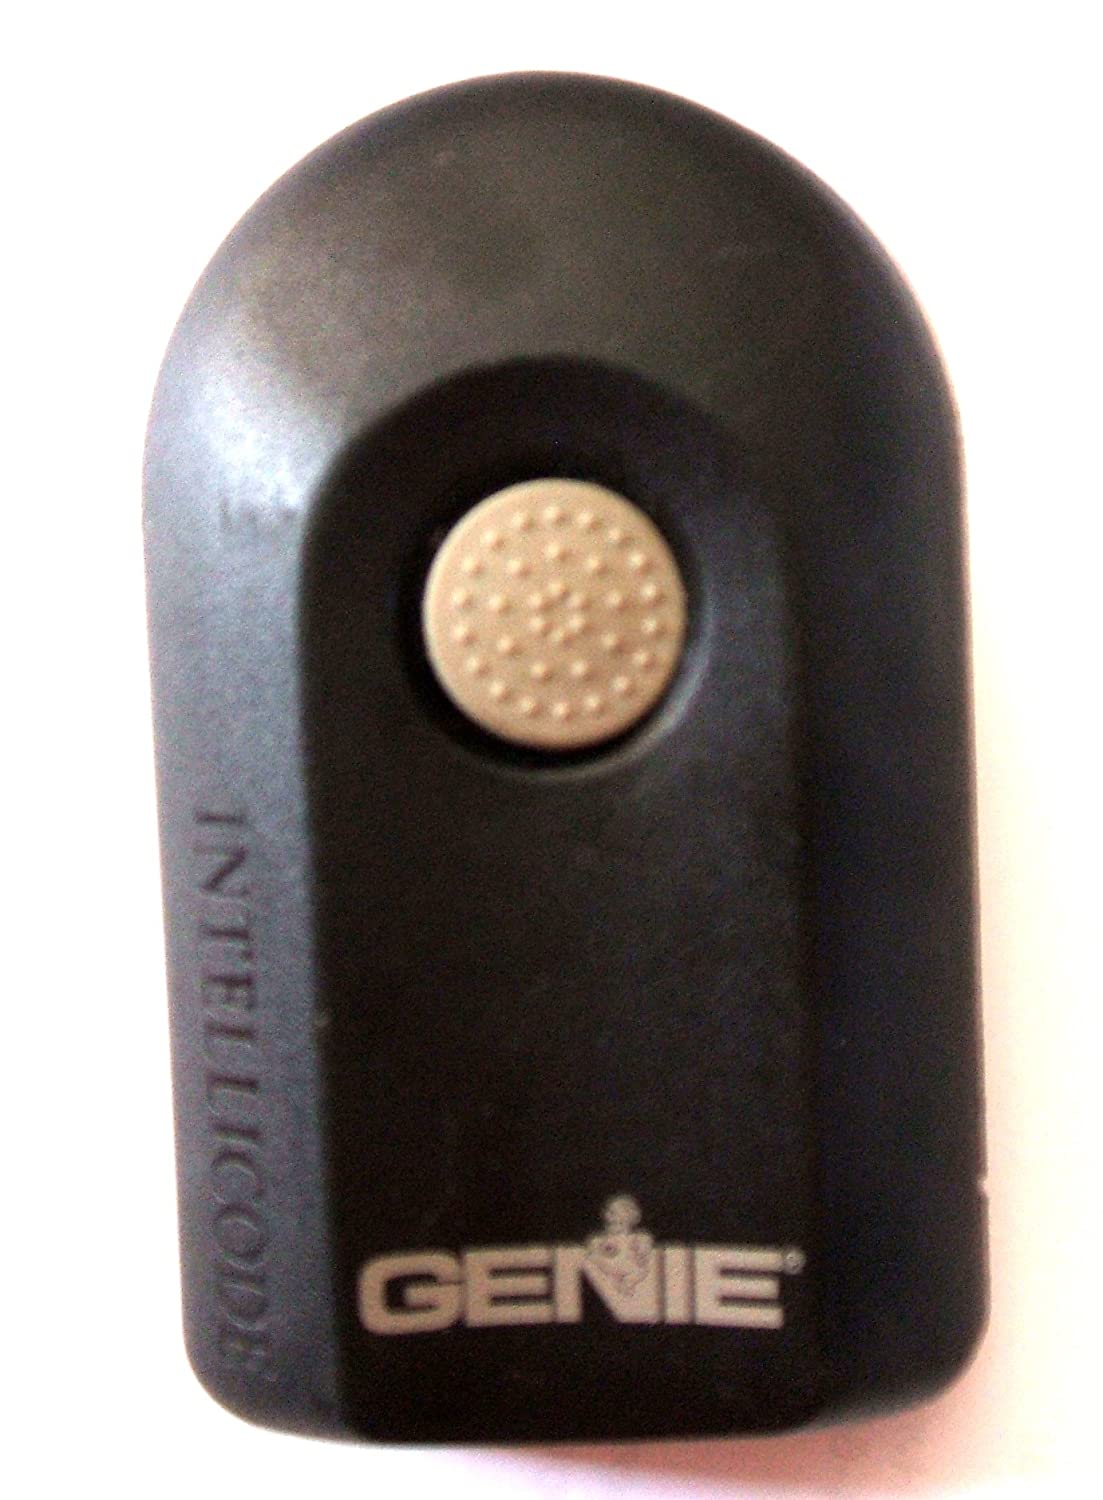 Awesome Genie GIT 1BL Garage Door Opener Remote ACSCTG Type 1 With Intellicode   Garage  Door Remote Controls   Amazon.com